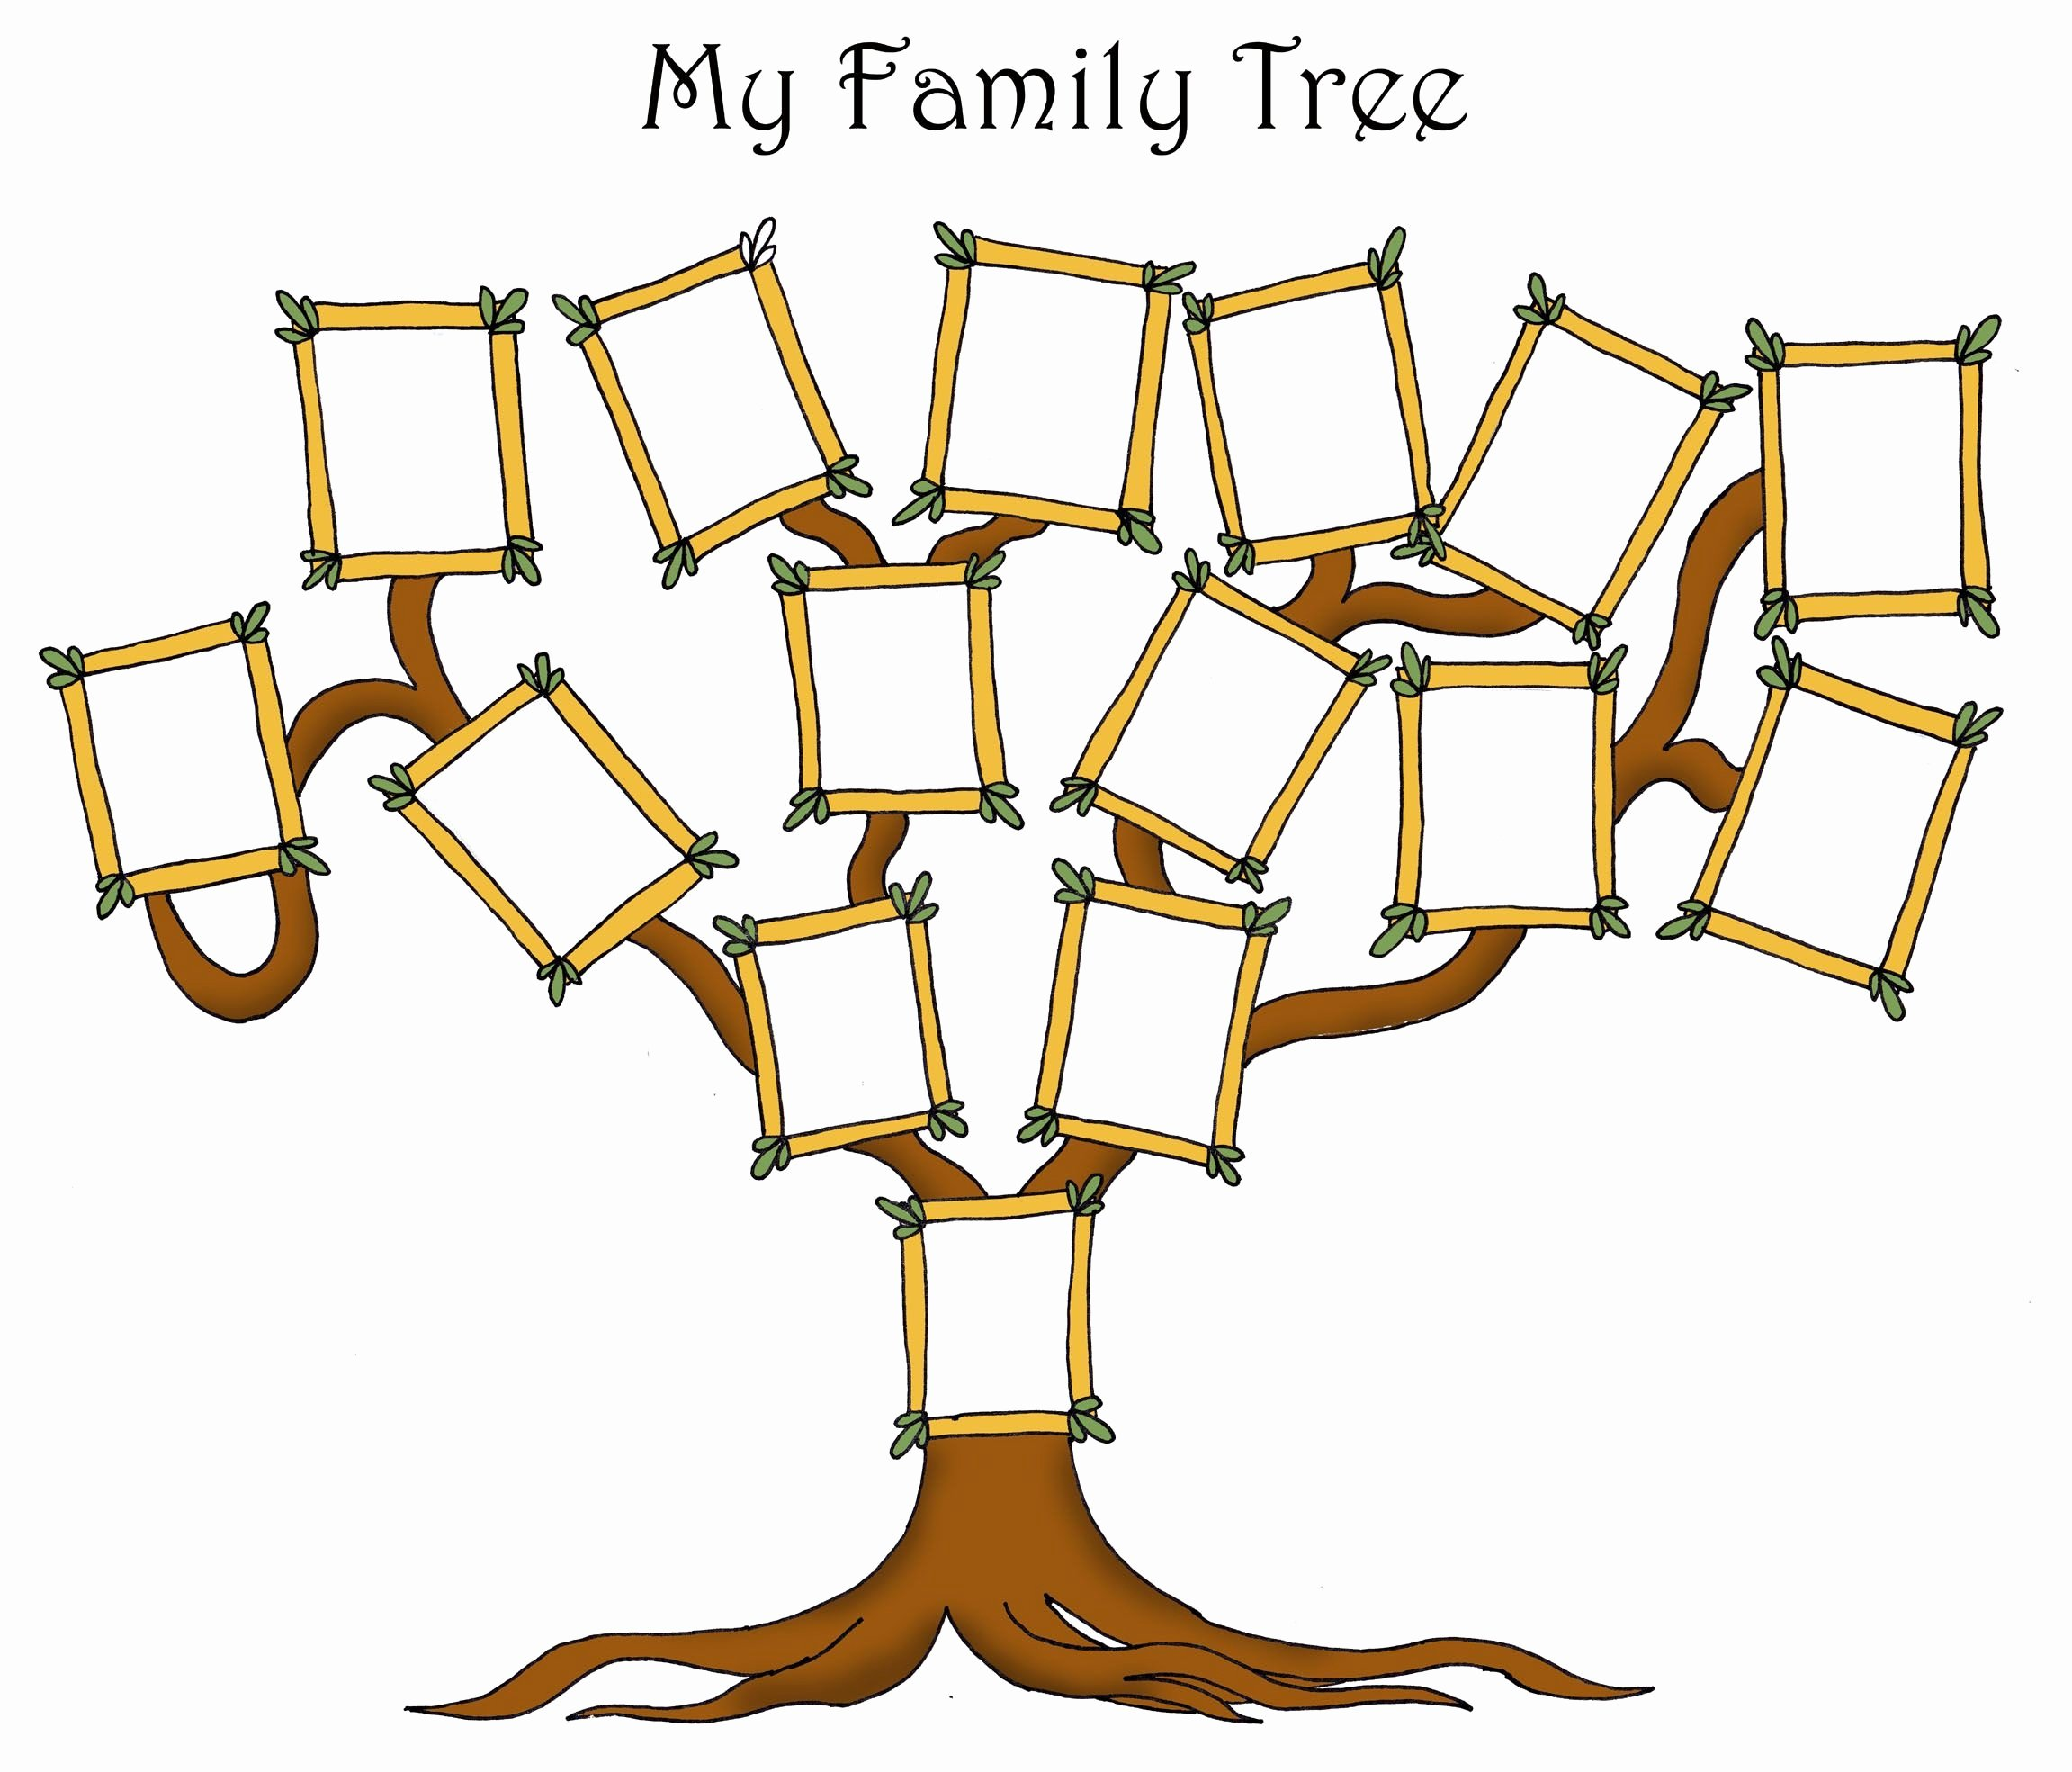 Tree Template for Family Tree Best Of Free Editable Family Tree Template Daily Roabox